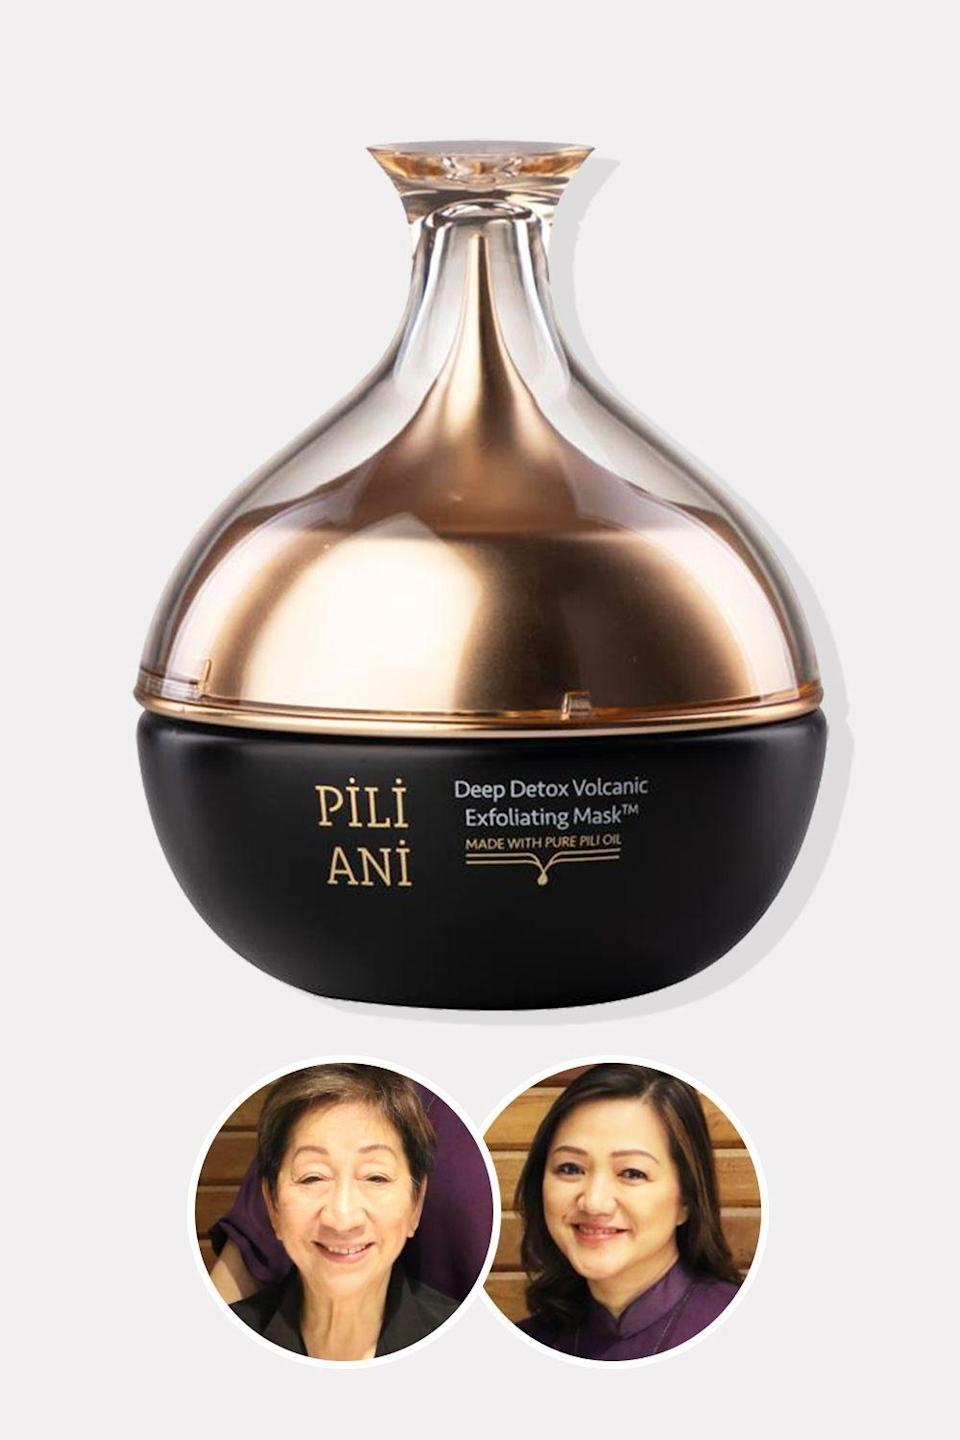 """<p><strong>Pili Ani</strong></p><p>hsn.com</p><p><strong>$42.00</strong></p><p><a href=""""https://go.redirectingat.com?id=74968X1596630&url=https%3A%2F%2Fwww.hsn.com%2Fproducts%2Fpili-ani-deep-detox-volcanic-exfoliating-mask%2F20018367&sref=https%3A%2F%2Fwww.oprahdaily.com%2Fbeauty%2Fskin-makeup%2Fg36454382%2Fasian-beauty-brands%2F"""" rel=""""nofollow noopener"""" target=""""_blank"""" data-ylk=""""slk:Shop Now"""" class=""""link rapid-noclick-resp"""">Shop Now</a></p><p>Rosalina Tan, dubbed the Mother of Organic Farming in the Philippines, became fascinated by the resilience of the Pili Tree from the Bicol region of the country. Known as the """"stress-loving tree"""" by Filipinos due to its abilities to withstand the area's numerous storms, Tan and her daughter Mary Jane Tan-Ong decided to harness the anti-aging powers of the oil from its seeds by launching their brand Pili Ani. The latest product, this detoxifying mask, pairs it with natural volcanic ash to deeply purify the pores.</p>"""